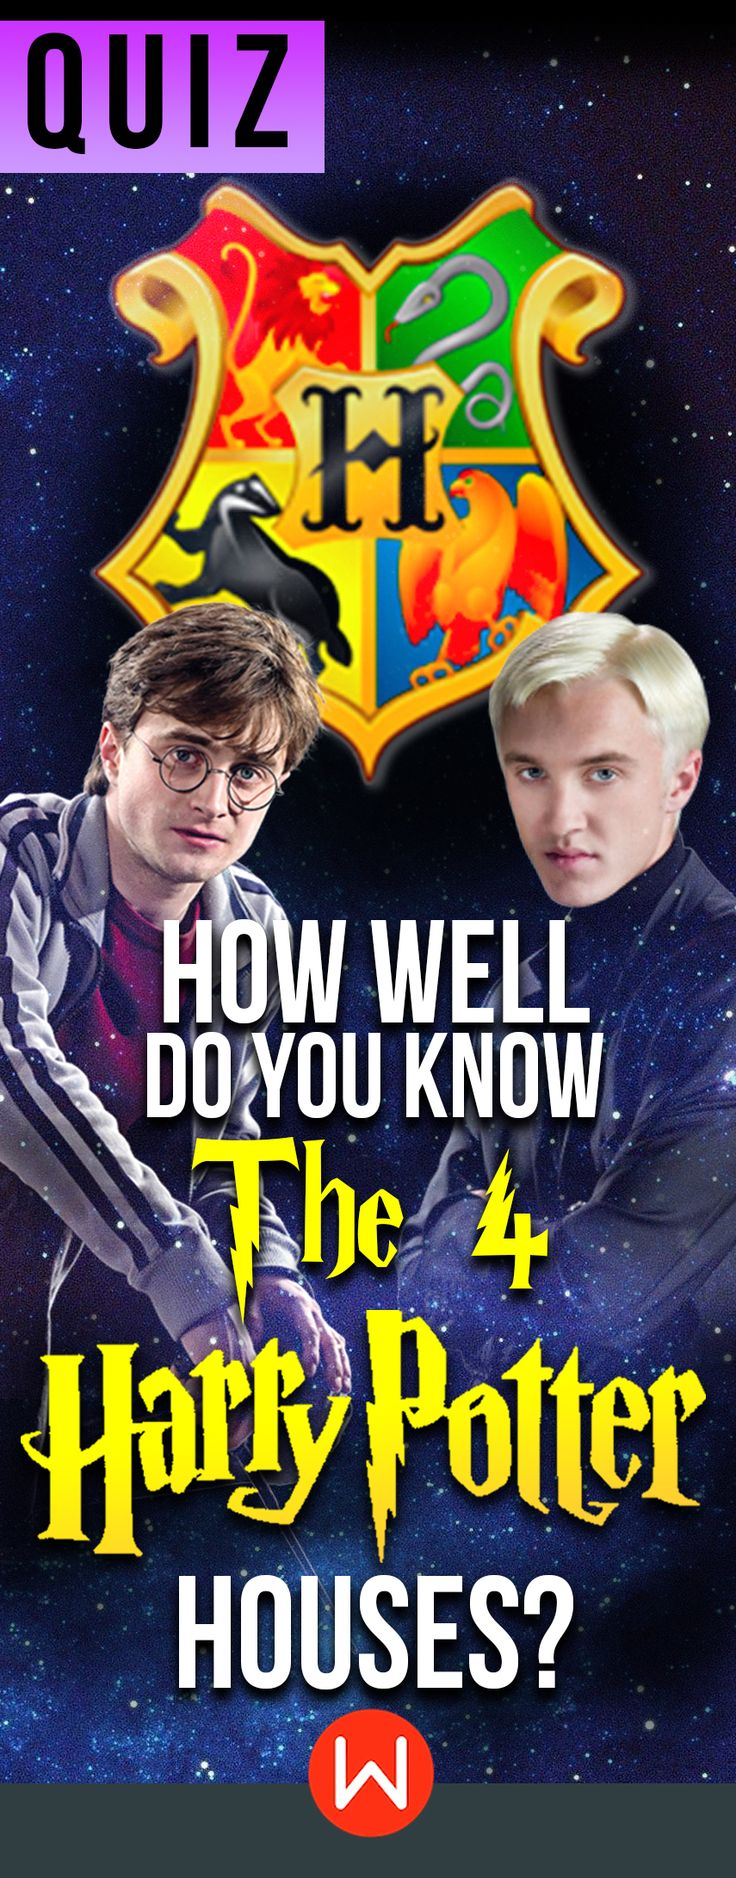 Quiz: How well do you know the 4 Harry potter houses? Gryffindor, Slytherin, Hufflepuff, Ravenclaw. It's time to put your thinking caps (or should we say sorting hats?) on! Hp quiz, Harry Potter trivia questions, Harry Potter Knowledge, buzzfeed quizzes, JK Rowling, Draco Malfoy.